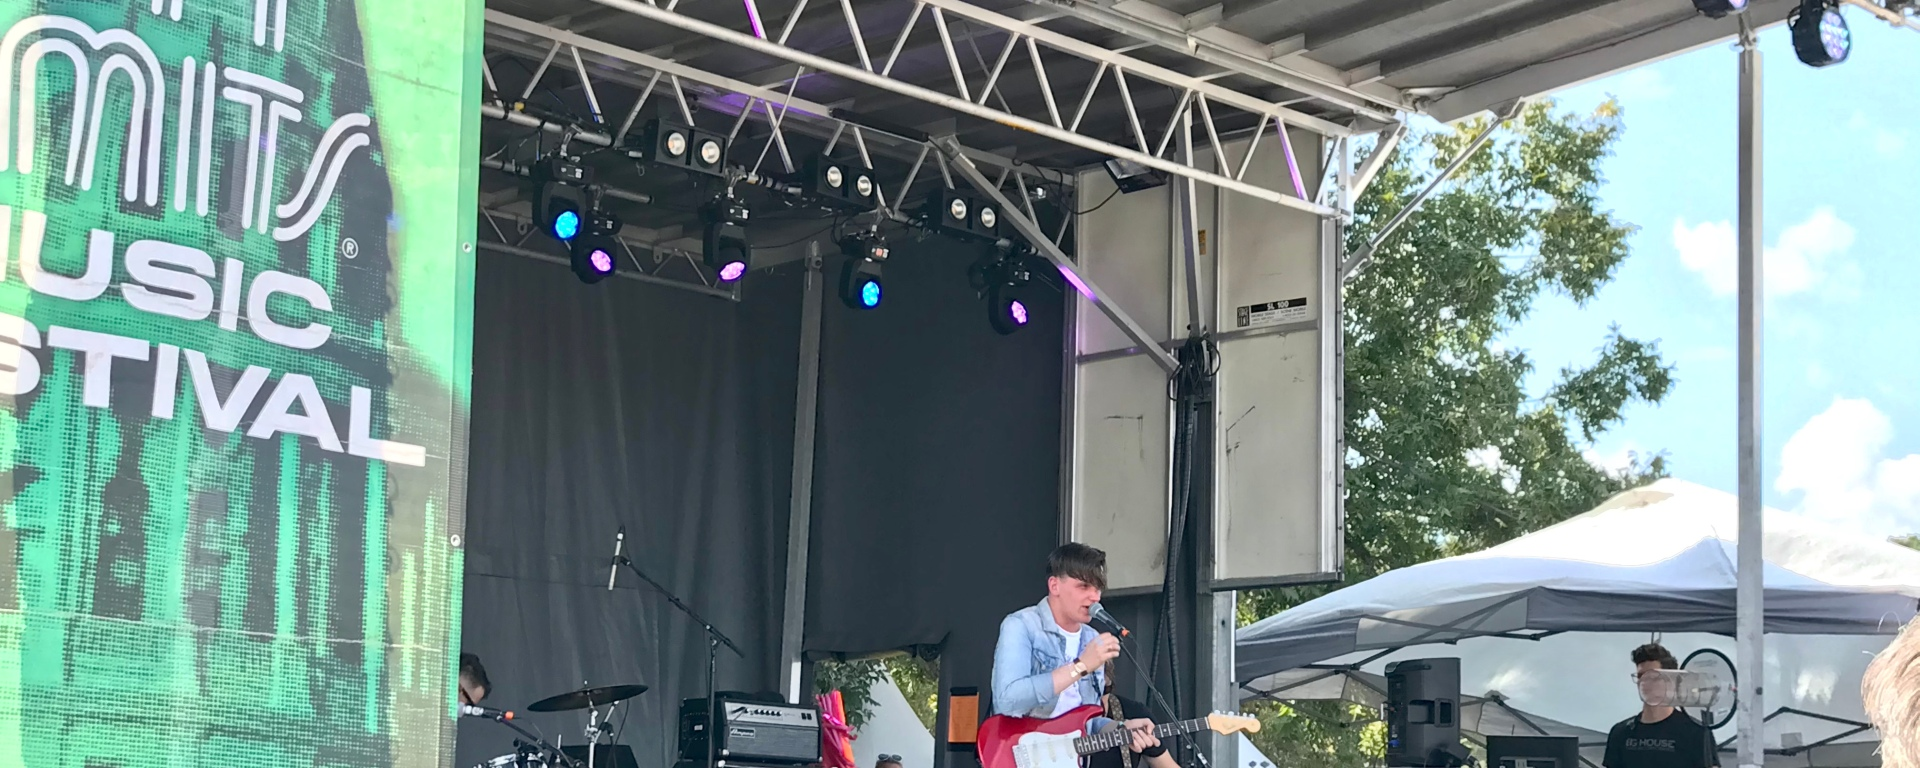 Singer / songwriter Patrick Droney plays live at Austin City Limits to a crowd of onlookers. The artist is wearing a blue jean jackets and holding a red guitar.